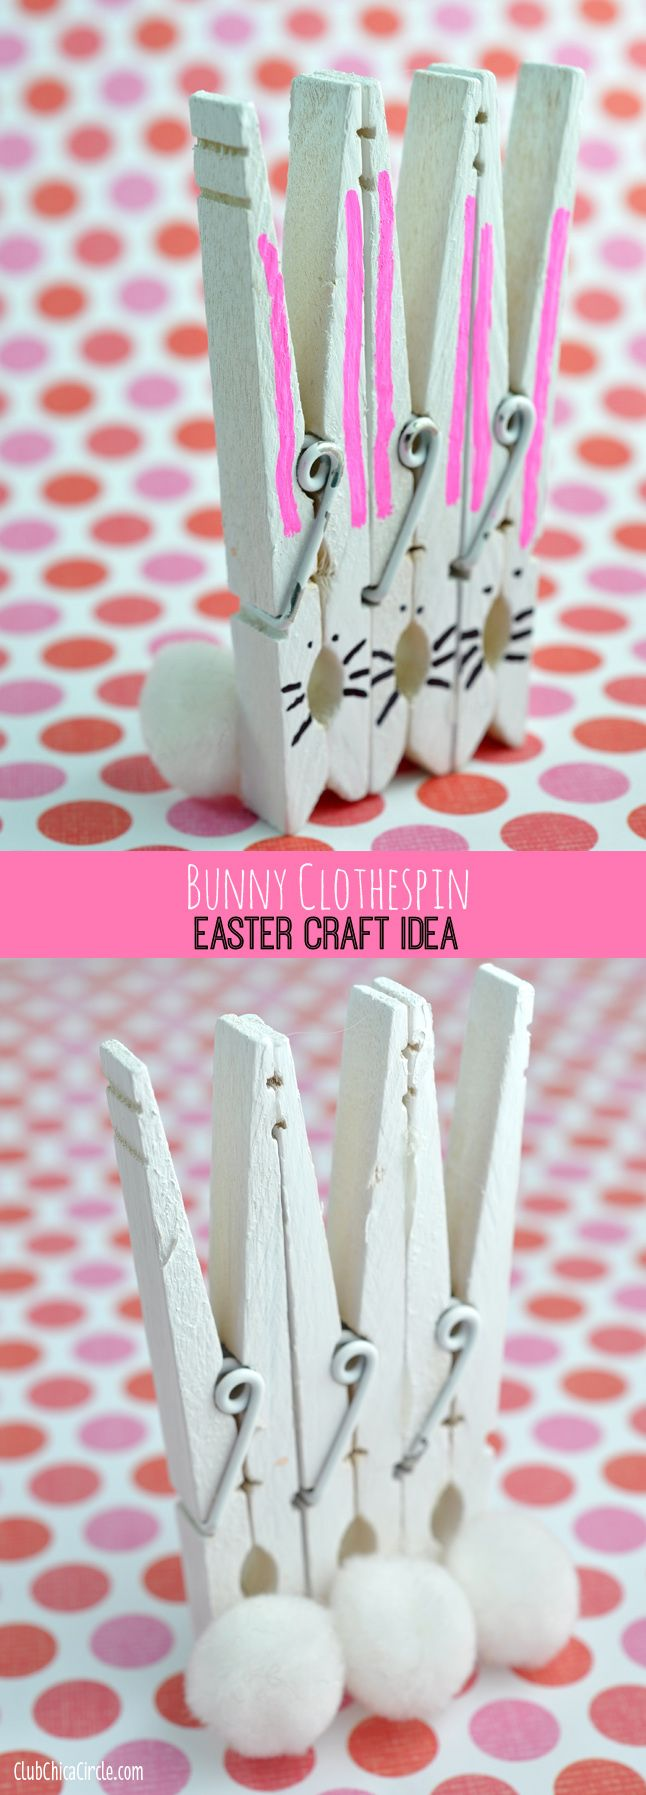 Bunny Clothespins Easter Craft Idea and DIY | Club Chica Circle - where crafty is contagious